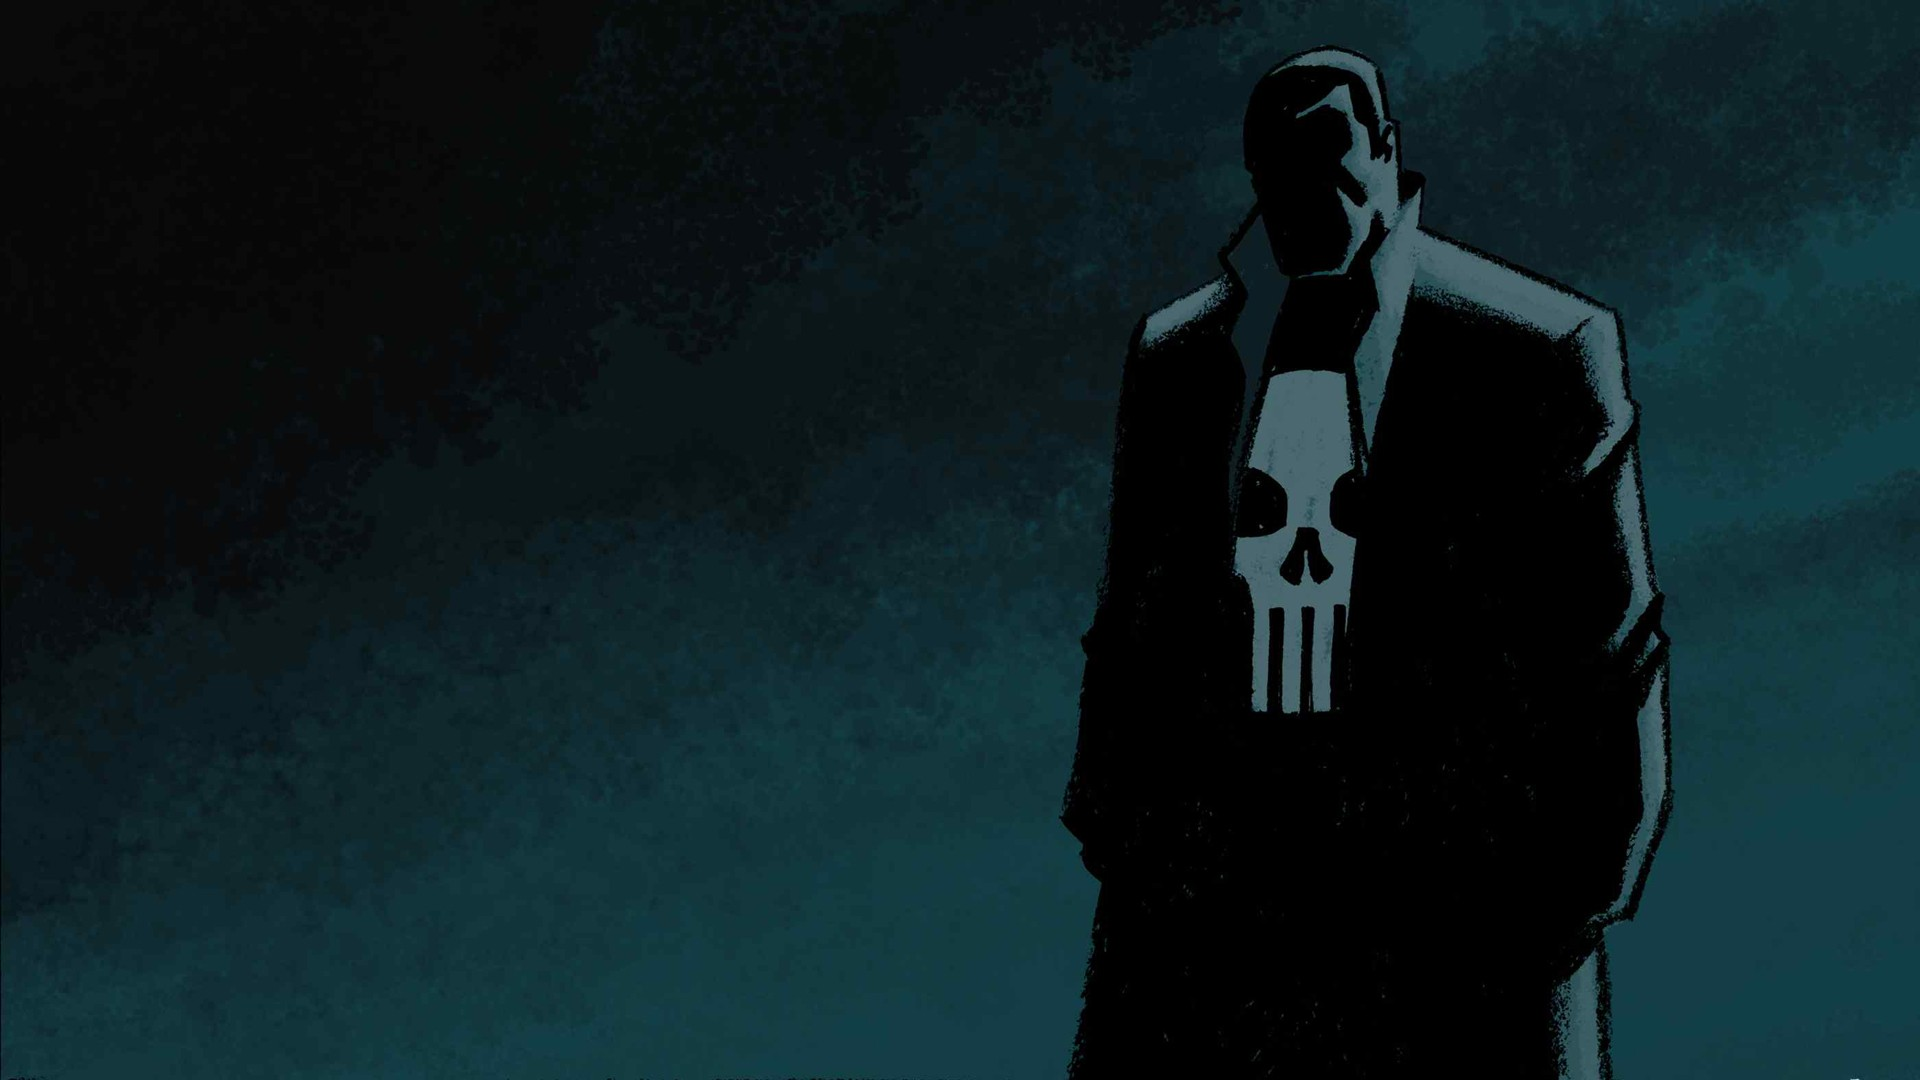 -the-punisher-wallpaper-hot-hd-and-full-view-the-punisher-wallpaper ...